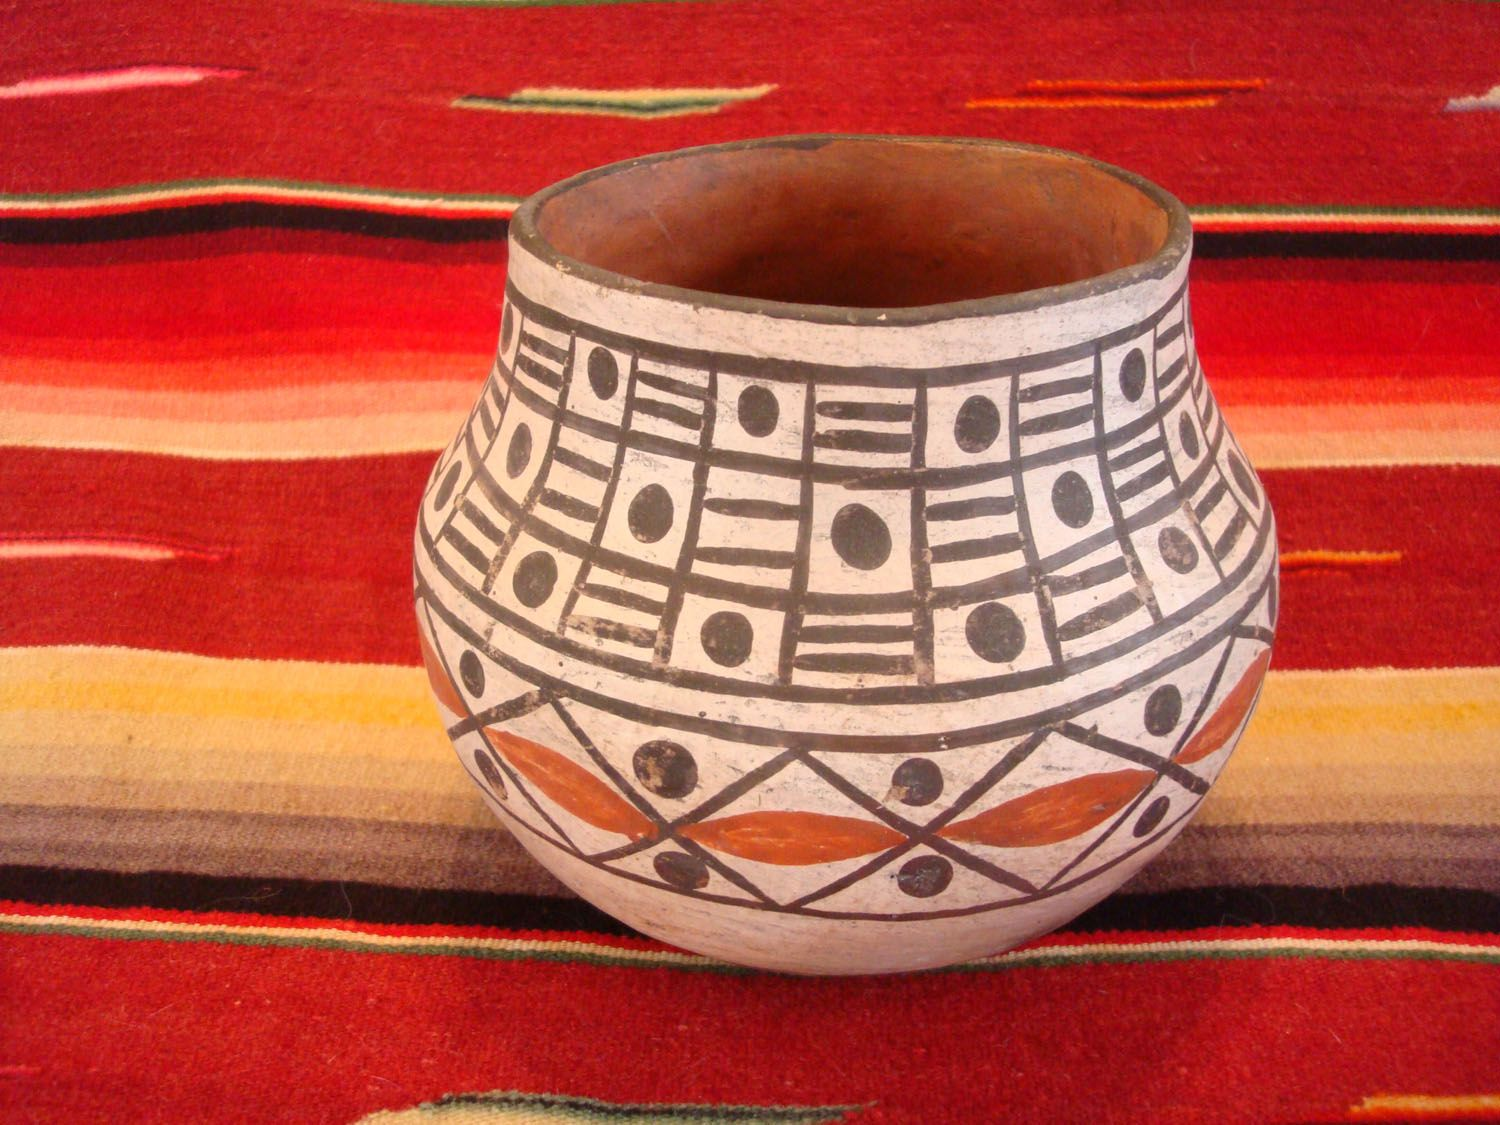 17 Best images about Pottery on Pinterest   Pottery designs ...